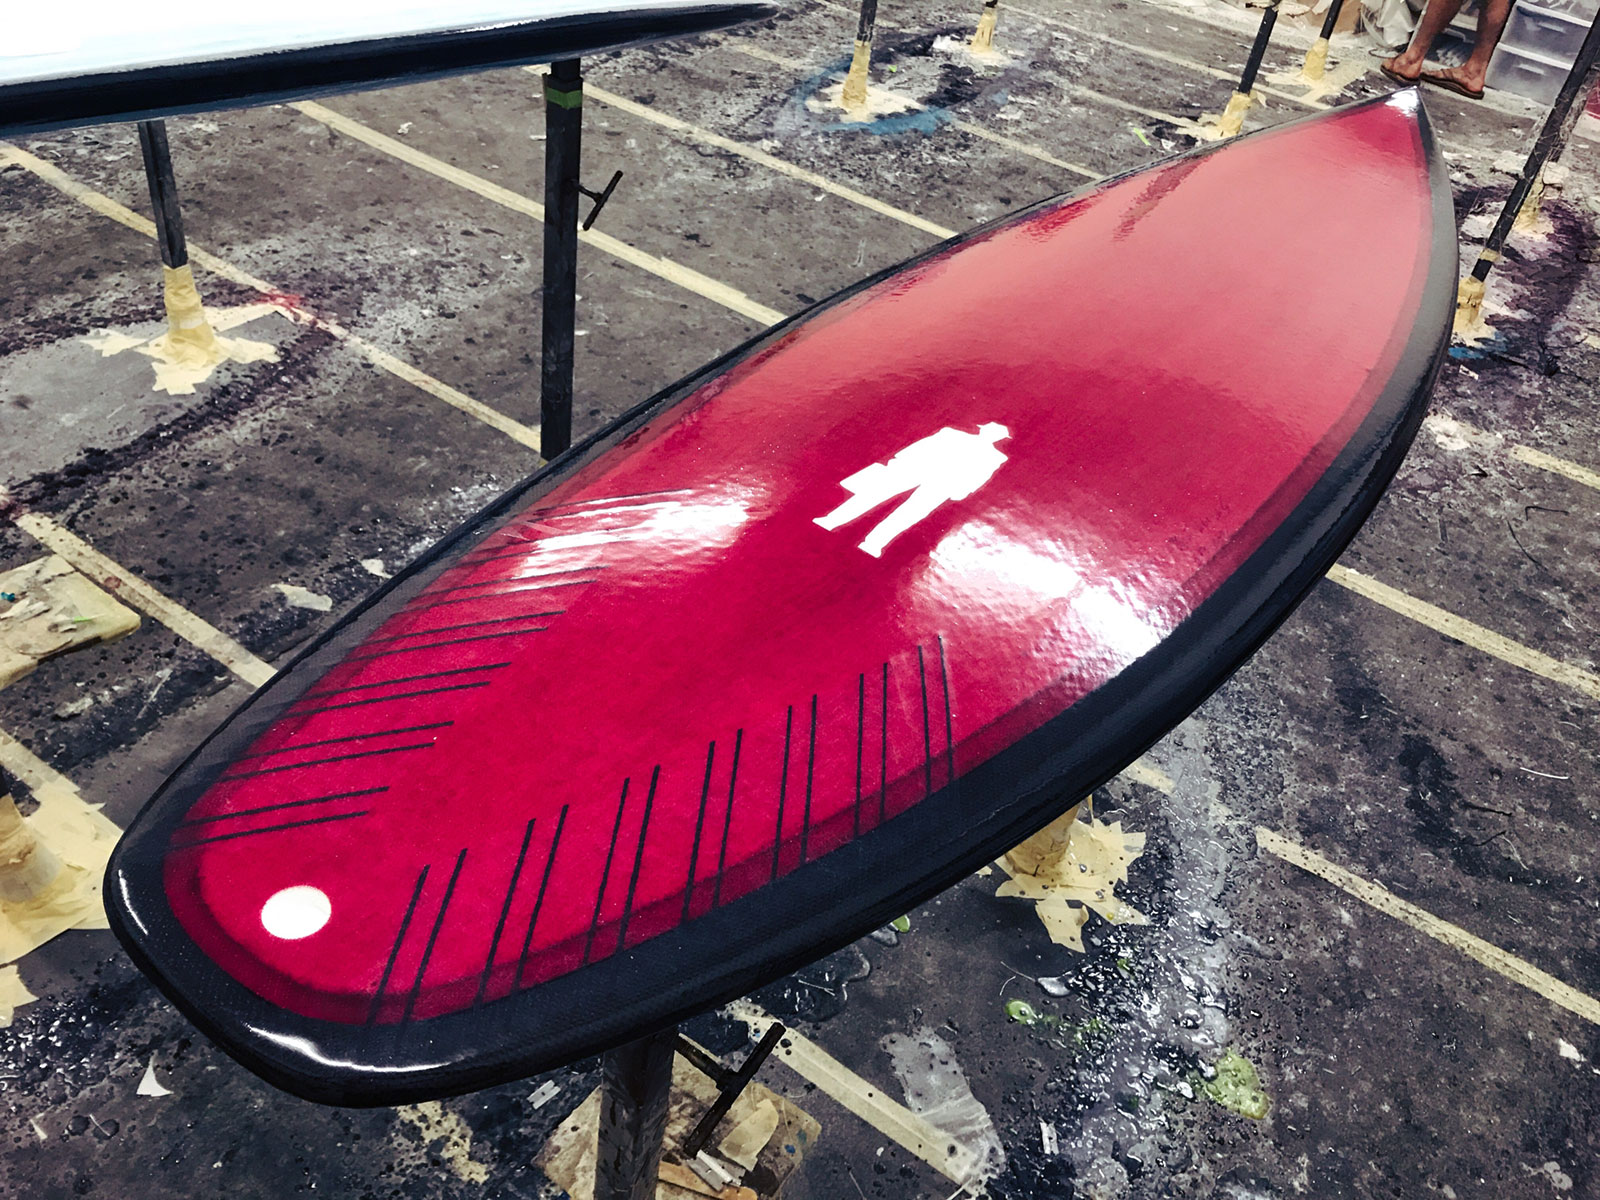 Magenta Cherry tint on a Carbon Rail epoxy